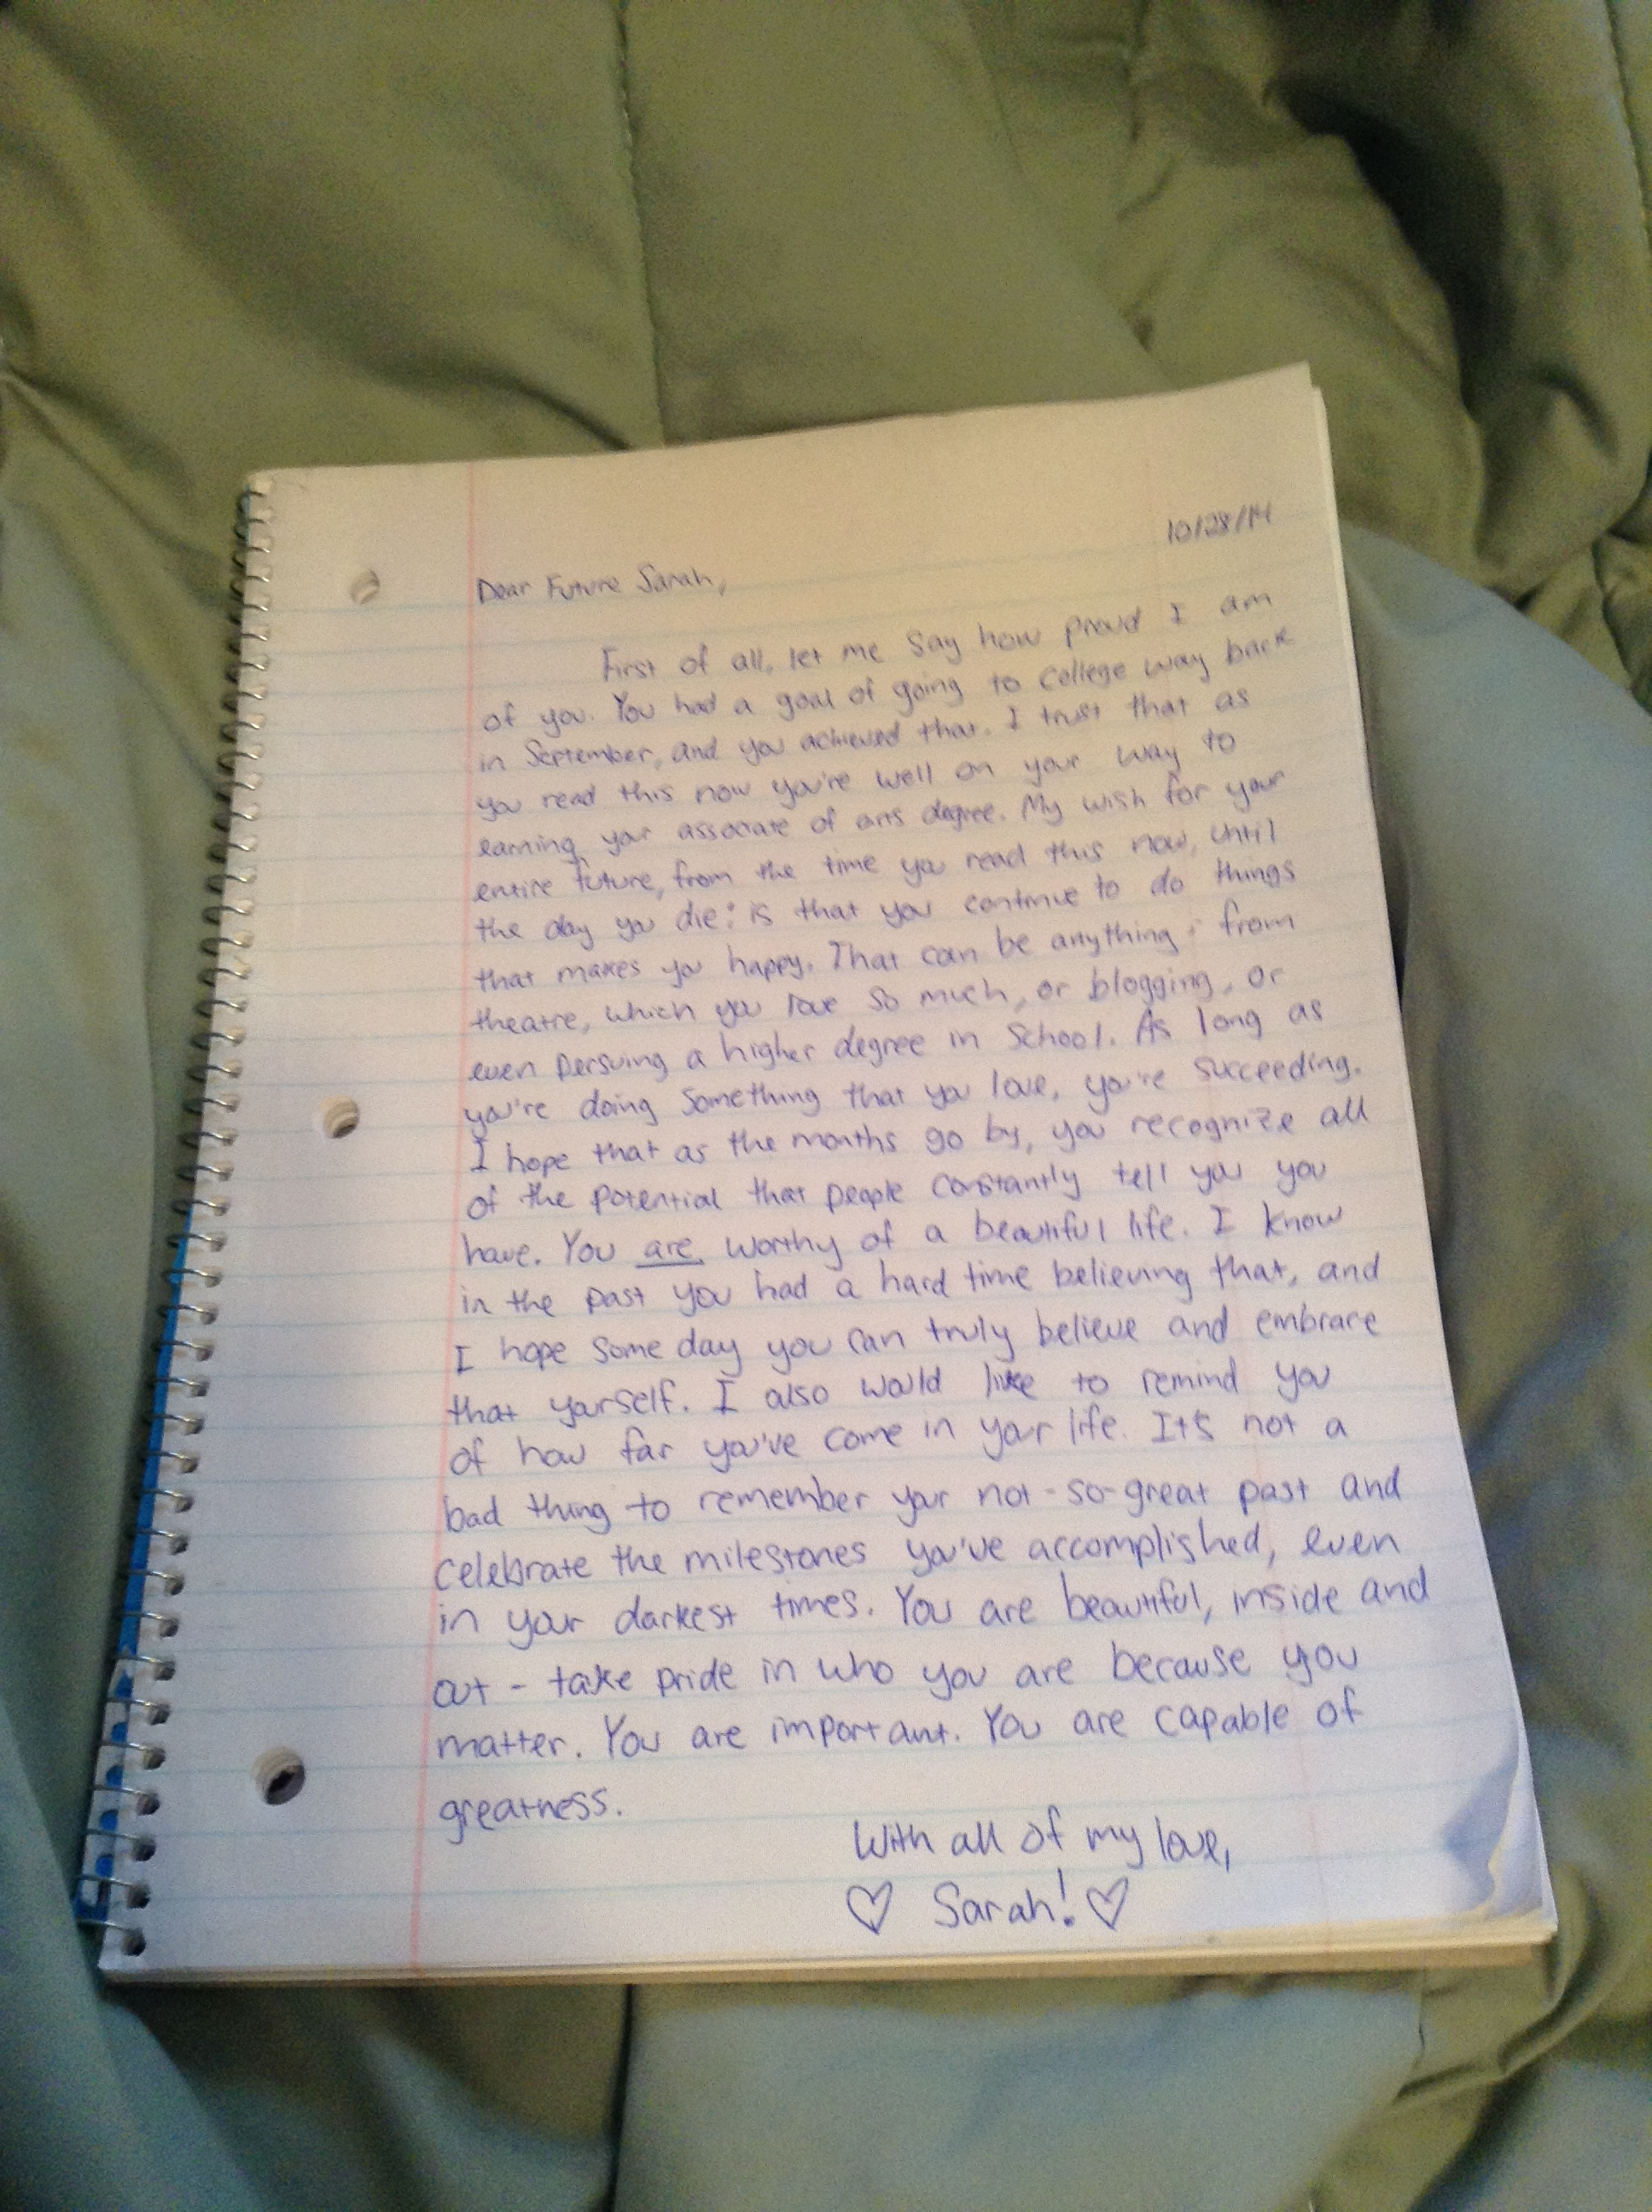 i had such a good time writing this letter it felt awesome to write down and see the positive affirmations i try and tell myself daily